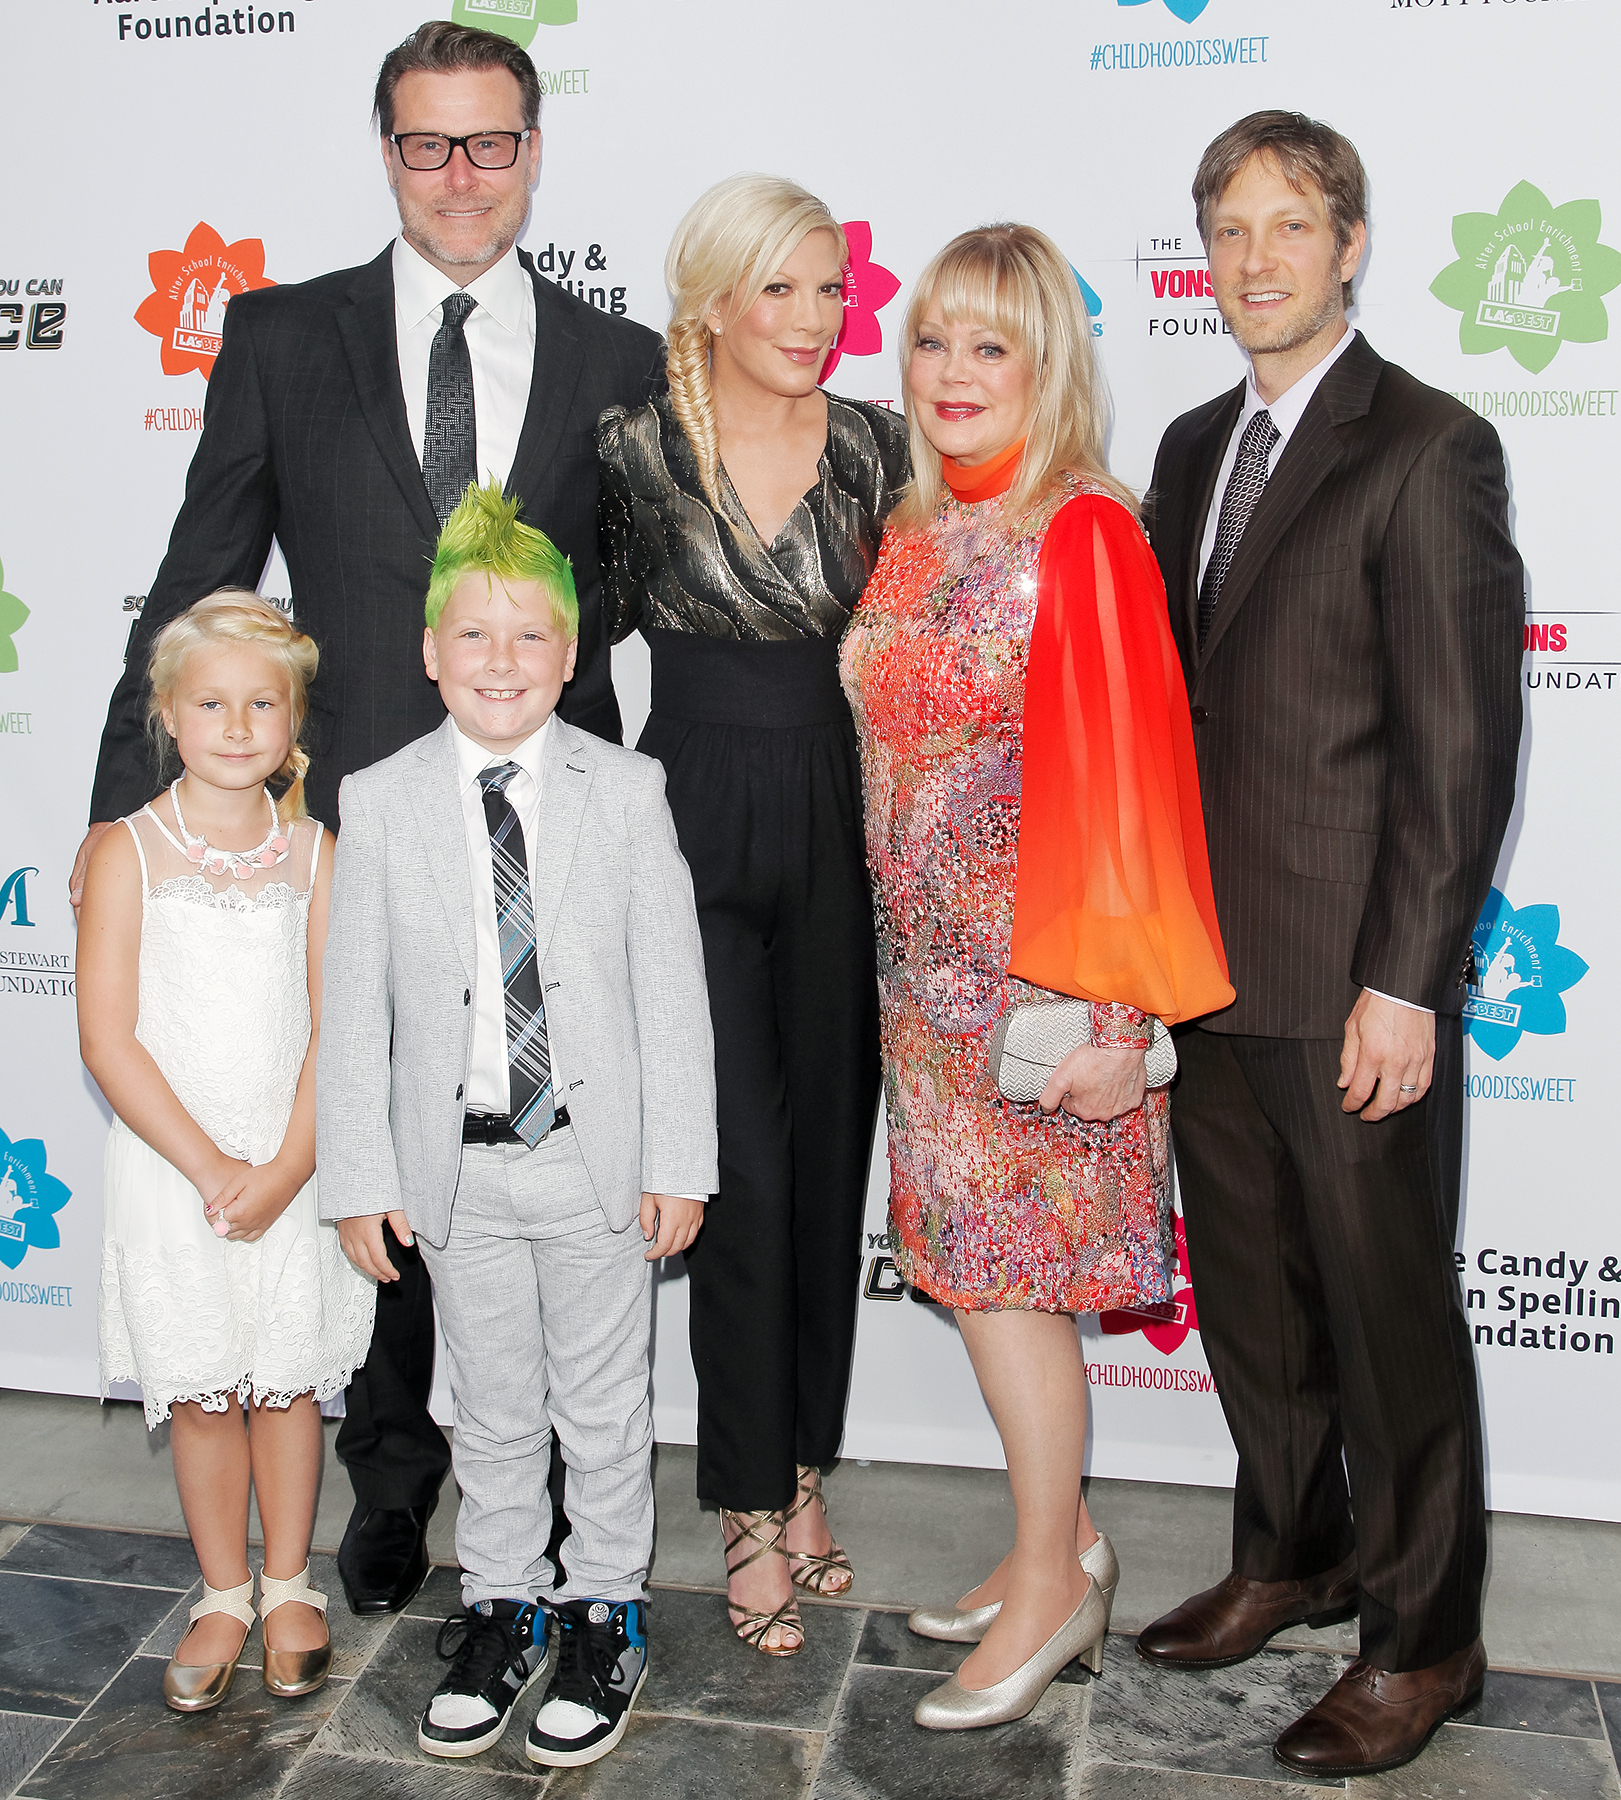 Tori Spelling Dean McDermott Liam Stella Candy Spelling Randy Spelling - McDermott and Spelling took their children to L.A'. s BEST Annual Family Dinner 2015 at Skirball Cultural Center on June 27, 2015, in Los Angeles, along with her mother and brother, Candy and Randy Spelling.